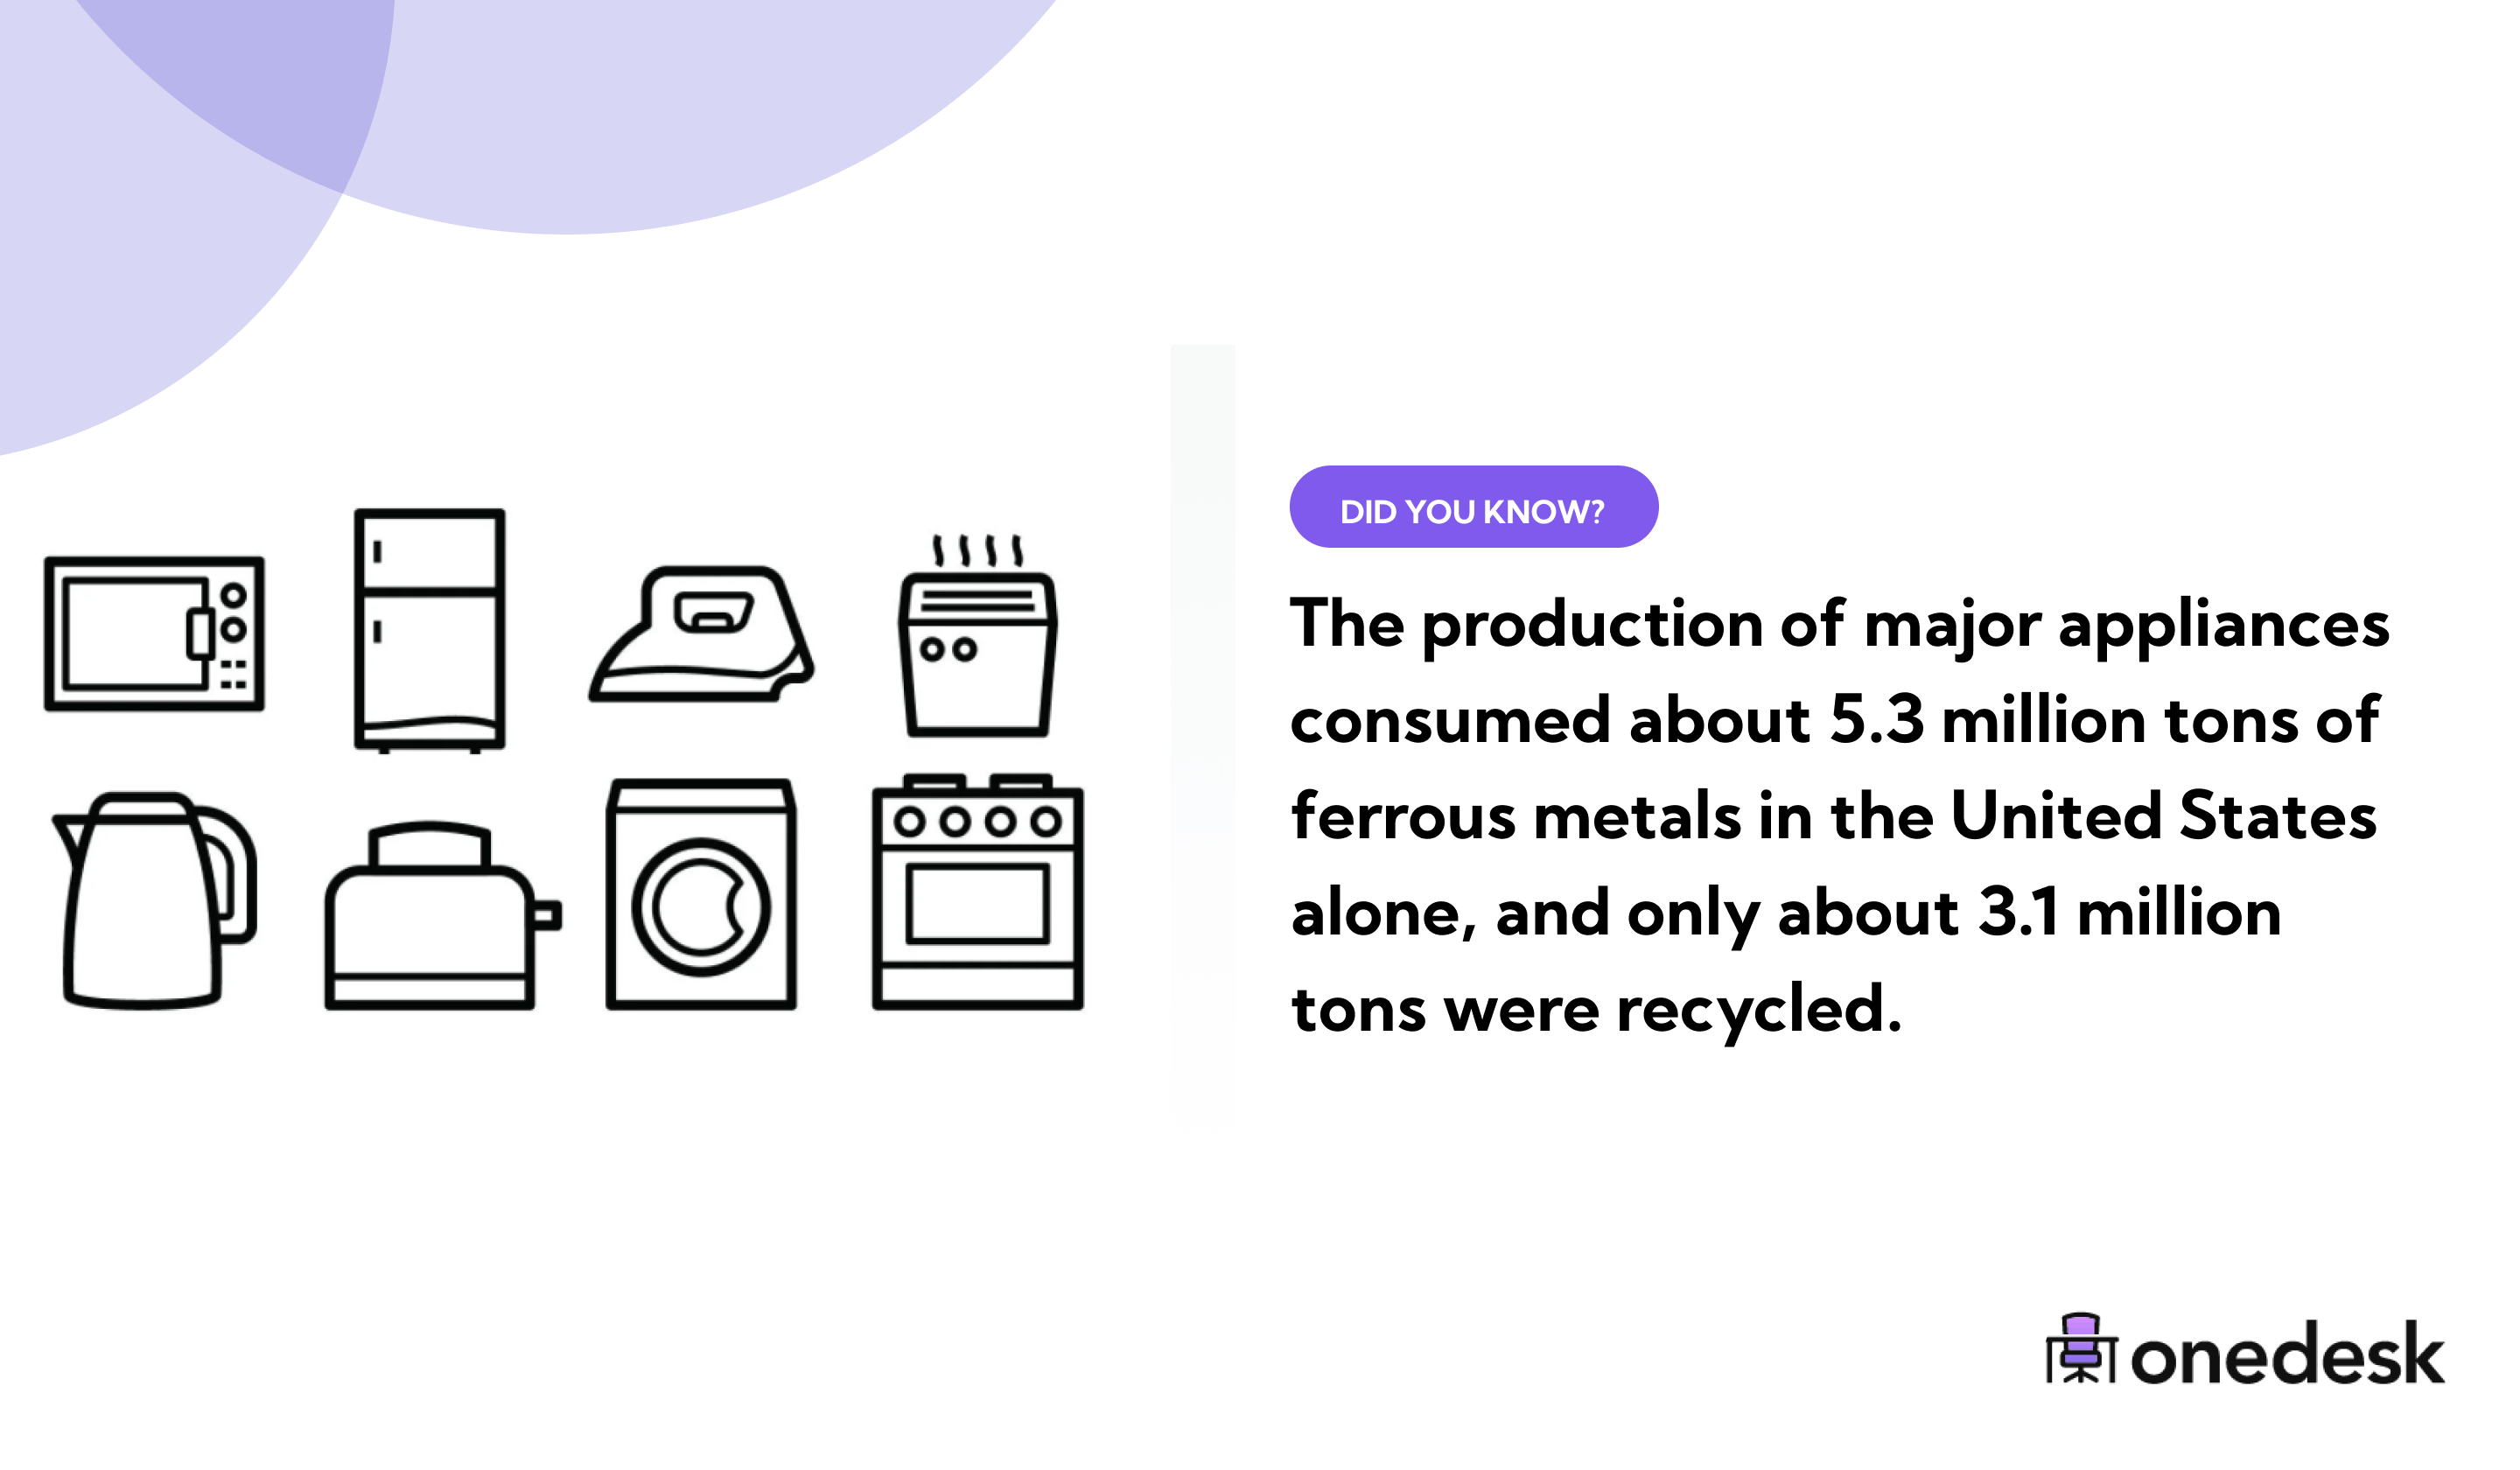 3.1 million tons of appliances are recycled